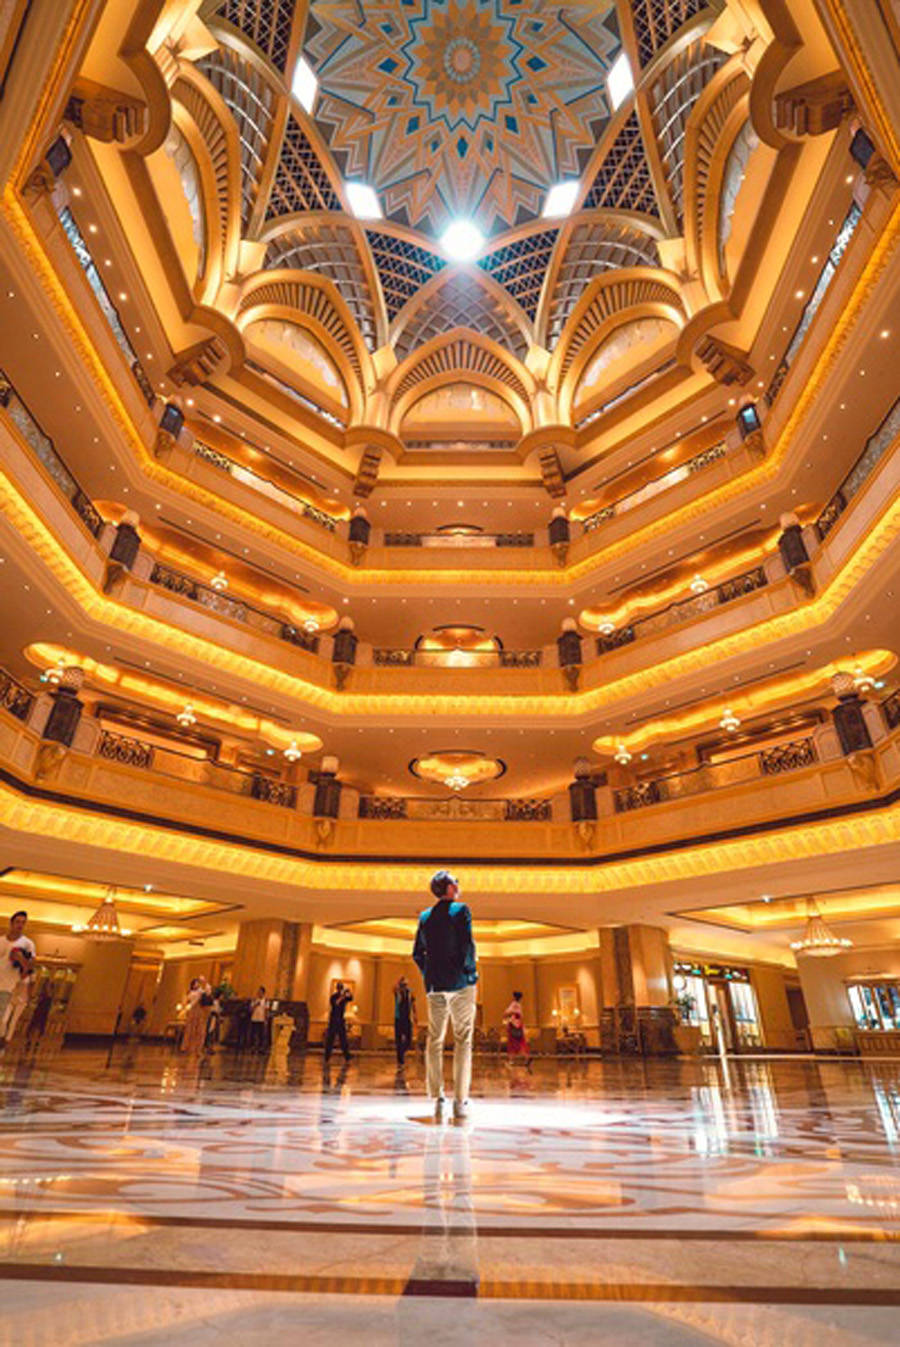 Rejuvenate yourself in the bliss of Emirates Palace